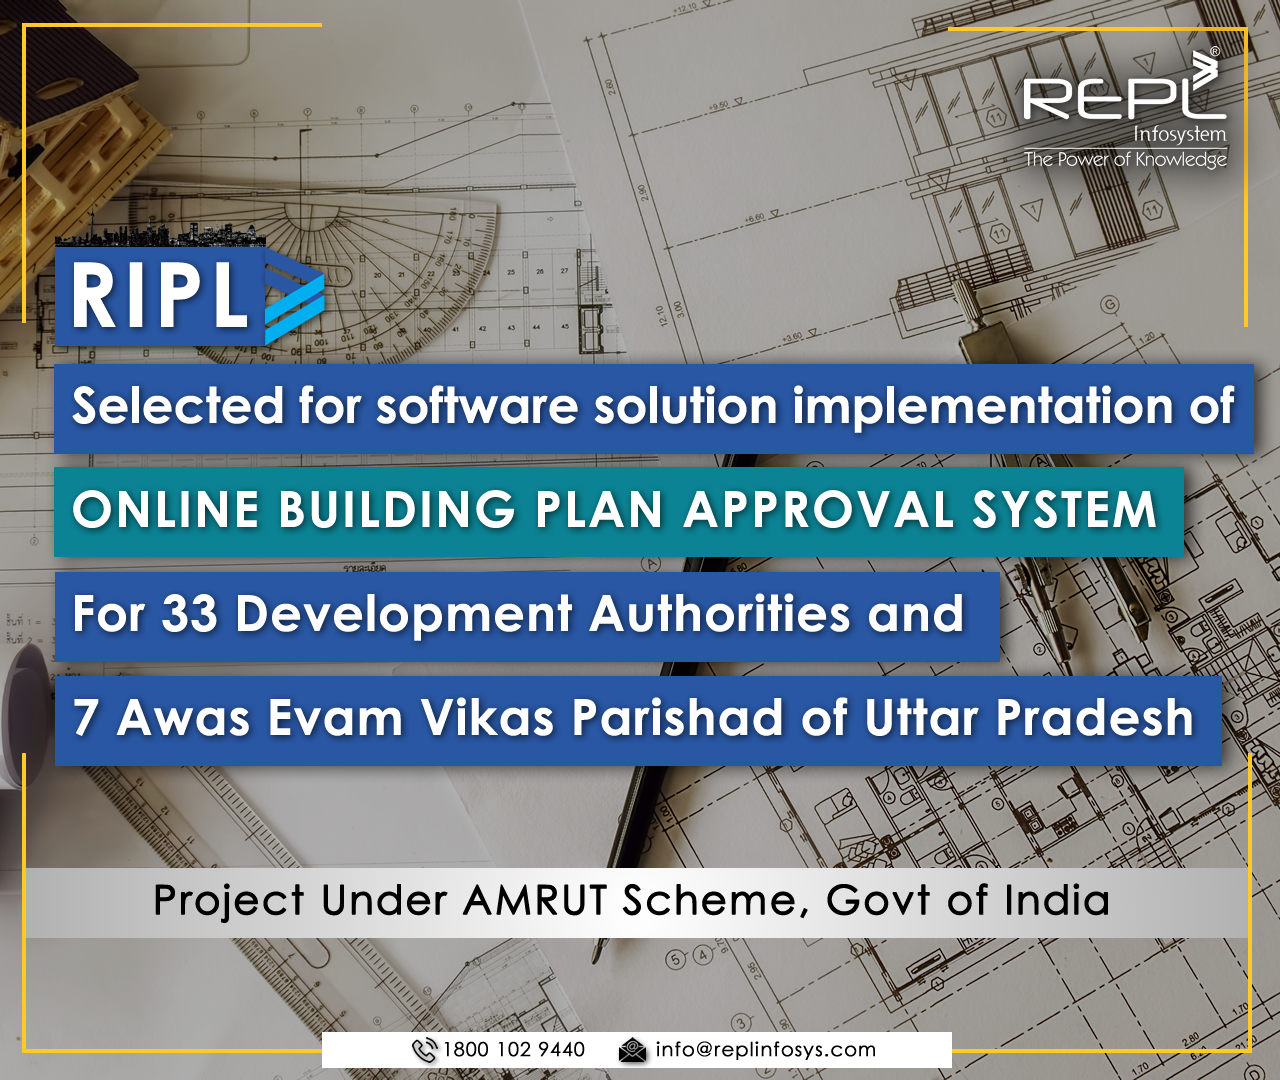 ONLINE BUILDING PLAN APPROVAL SYSTEM